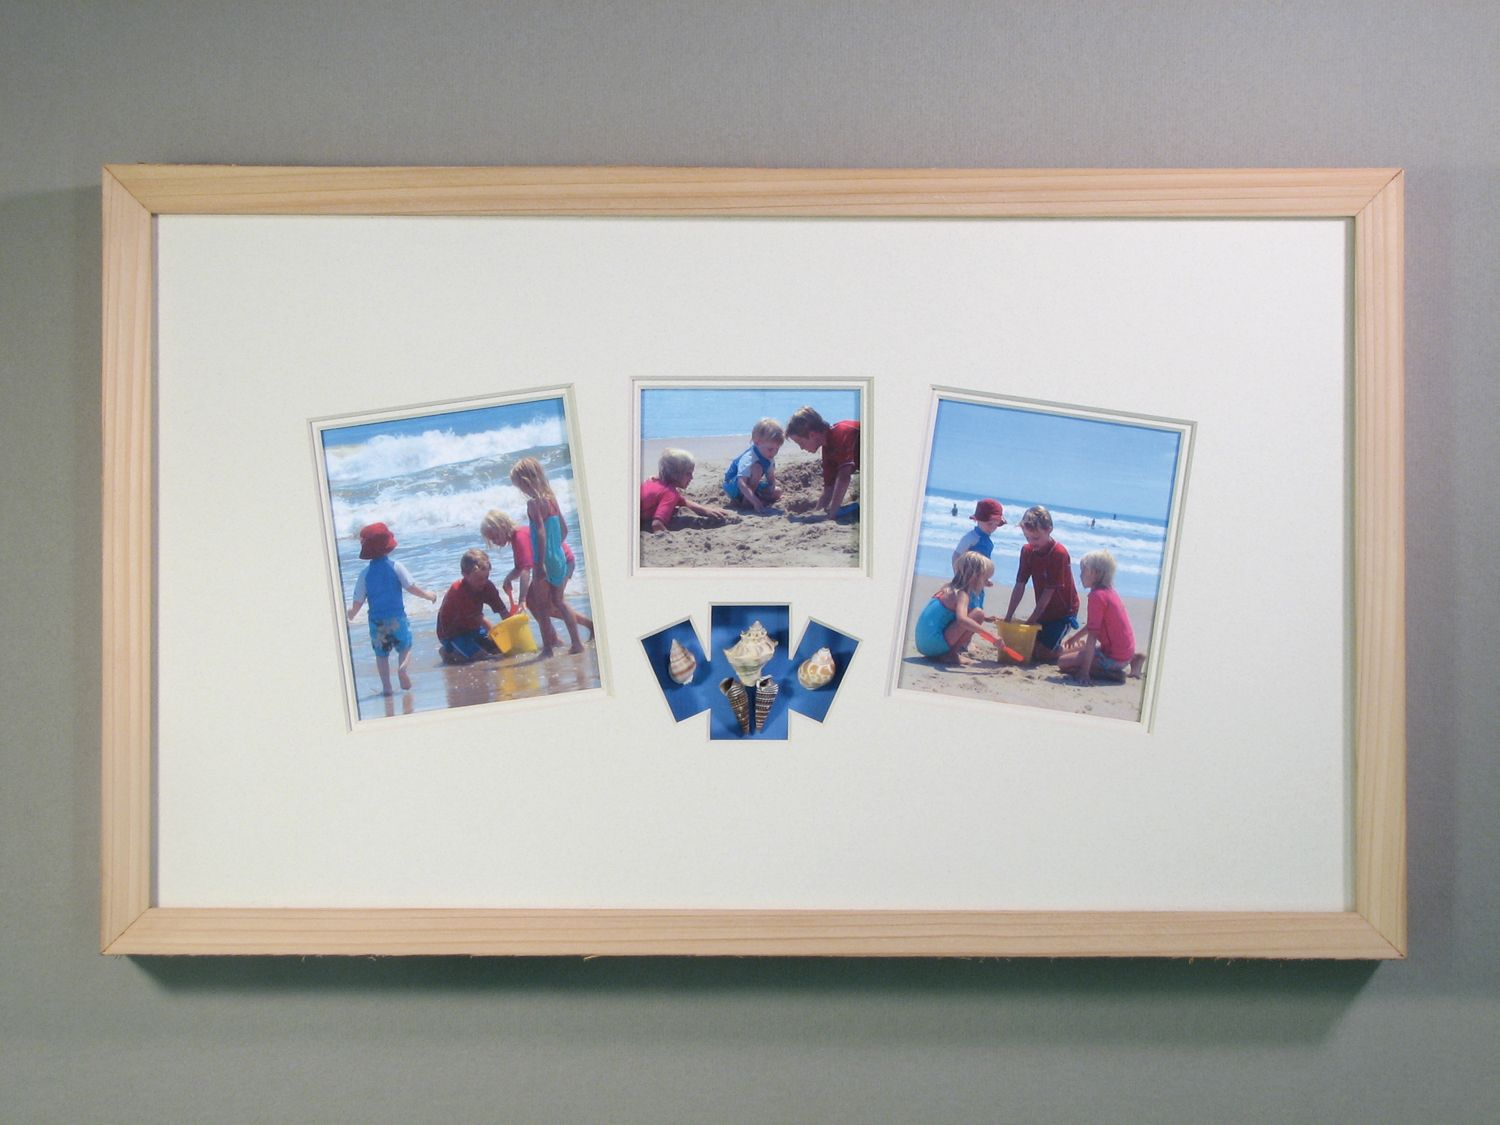 Pin by Picture Framing Magazine on Framing Photography   Pinterest ...